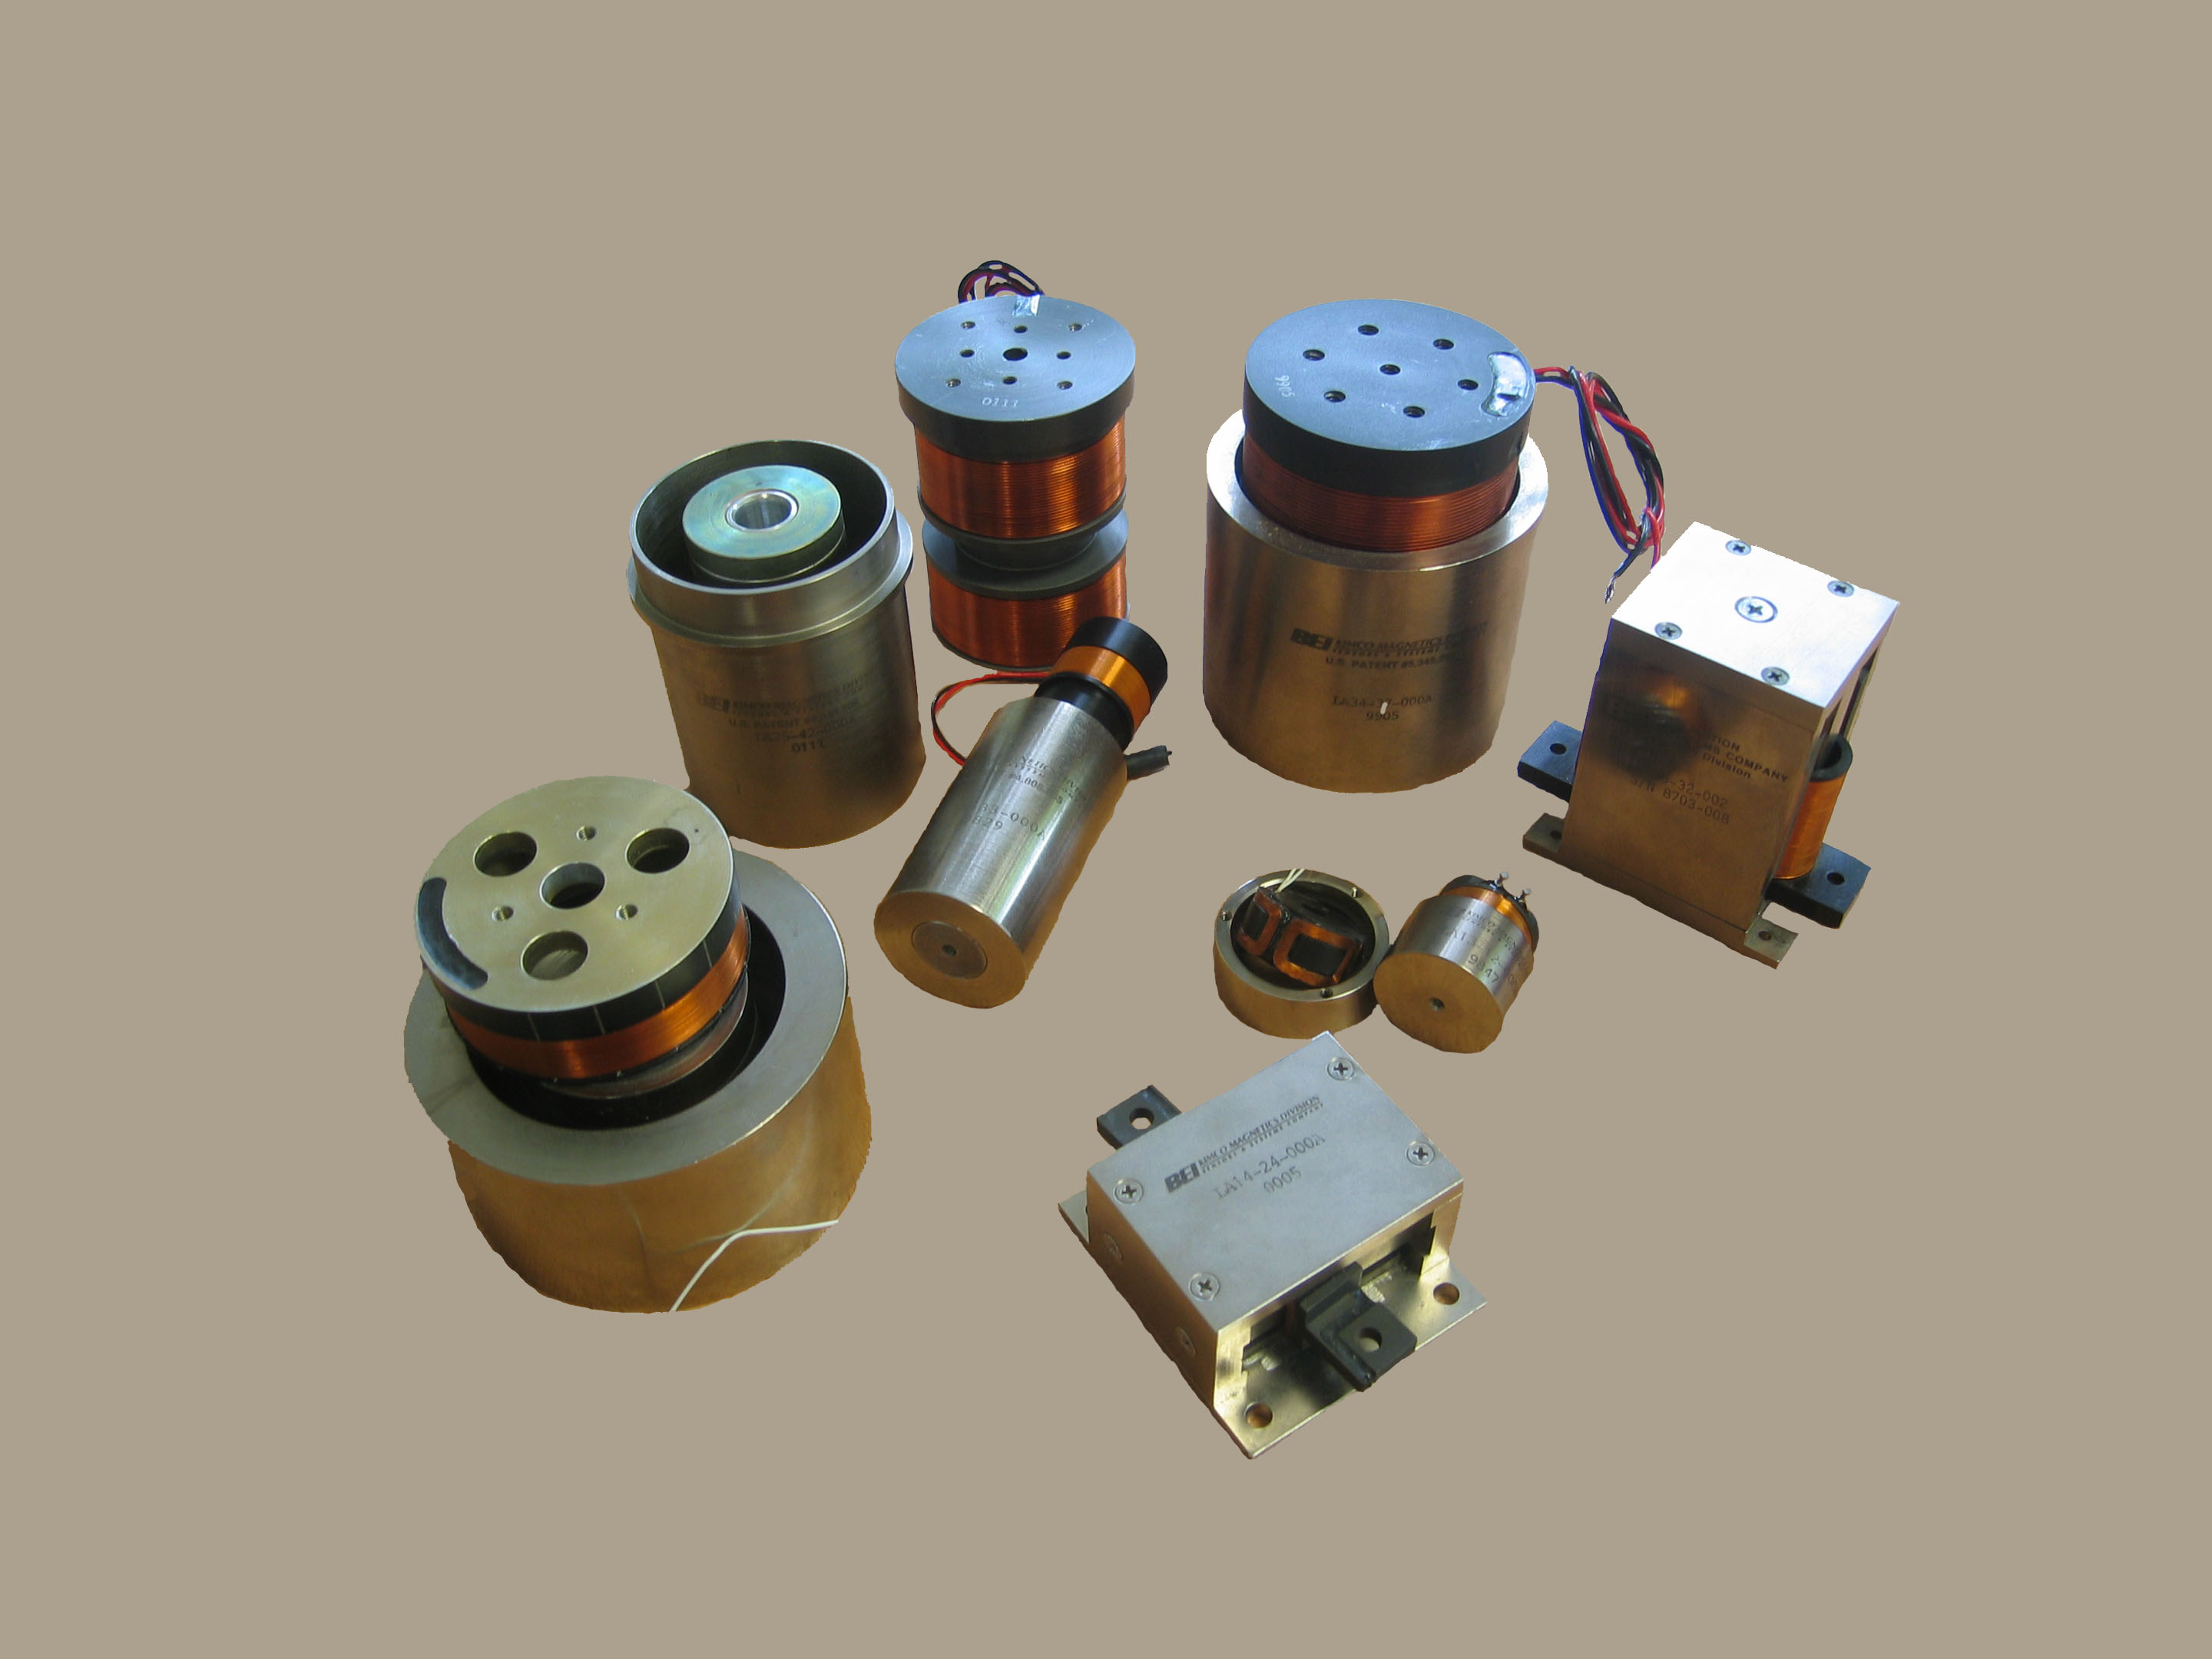 BEI Kimco voice coil actuator products